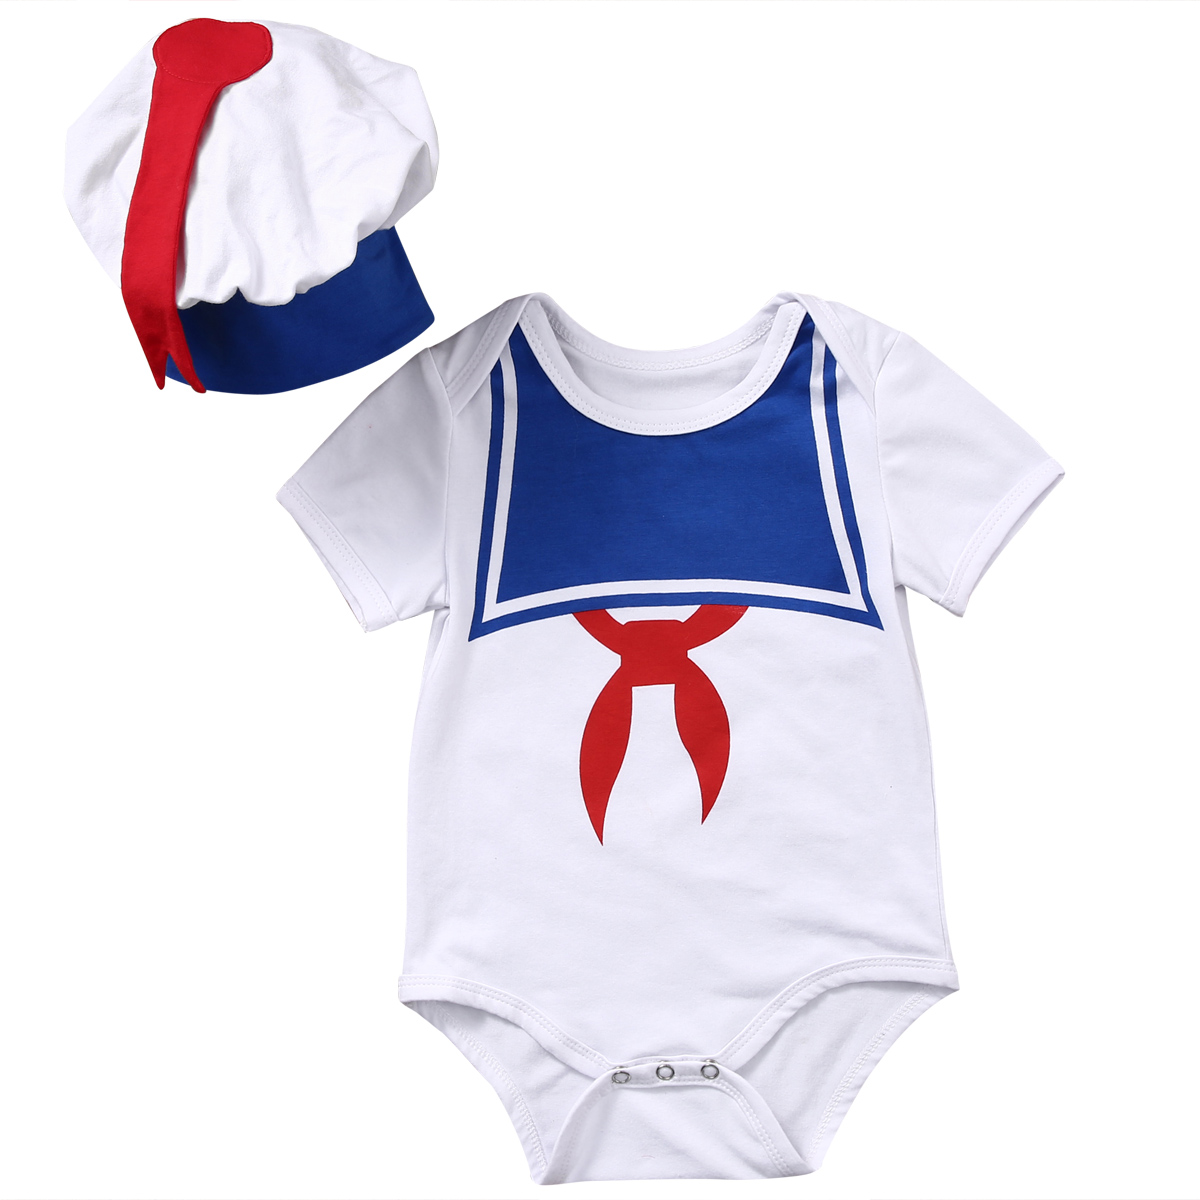 2pcs Newborn Baby Girls Boys Clothes Little Sailor Short Sleeve Bodysuit Romper Hat Outfit Tracksuit Costume Clothing Set fashion 2pcs set newborn baby girls jumpsuit toddler girls flower pattern outfit clothes romper bodysuit pants